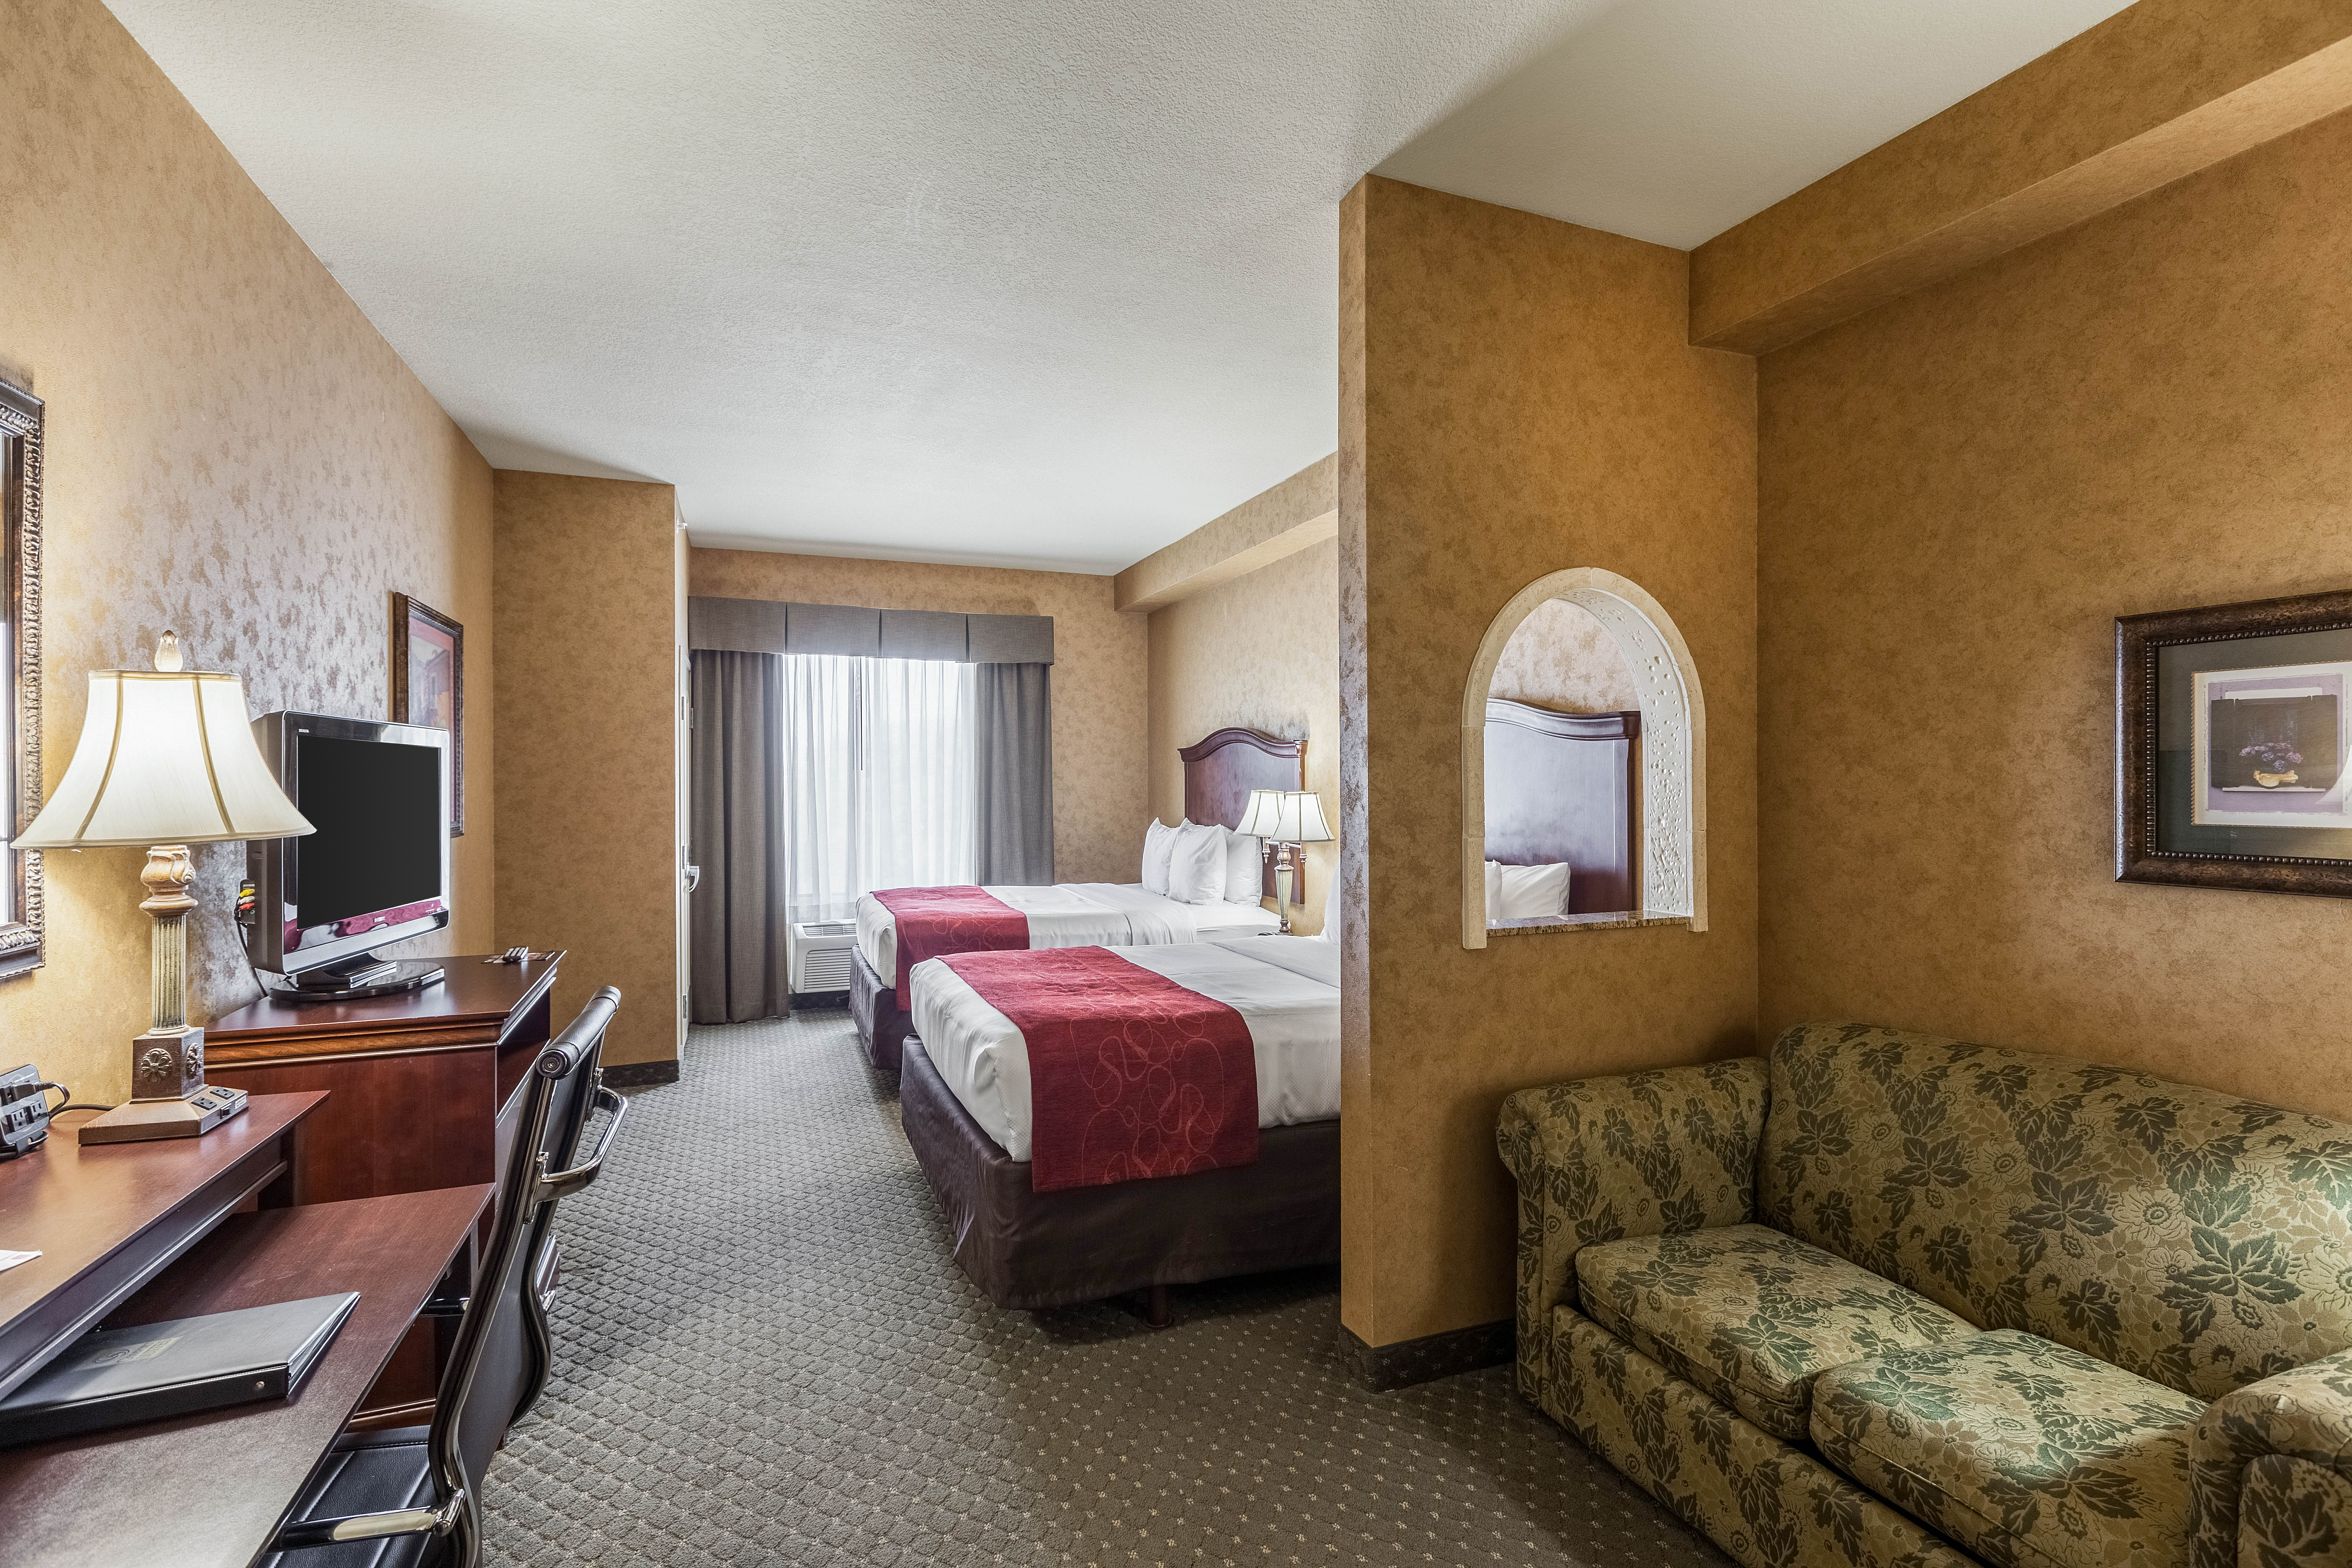 2 Bedroom Suites In San Antonio Riverwalk Knights Inn And Suites San Antonio Downtown Market